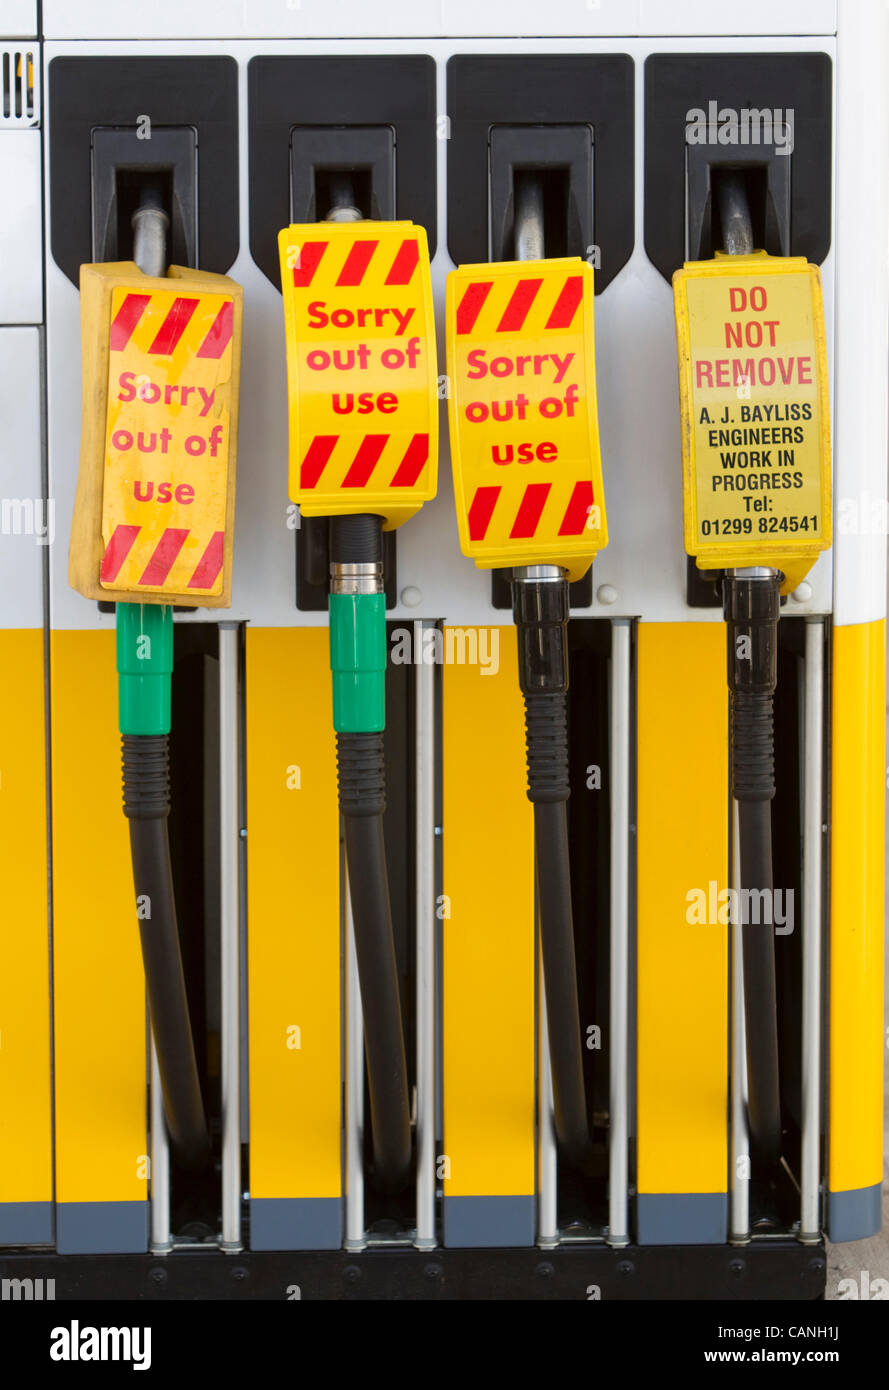 Sketty Stock Photos & Sketty Stock Images - Page 2 - Alamy